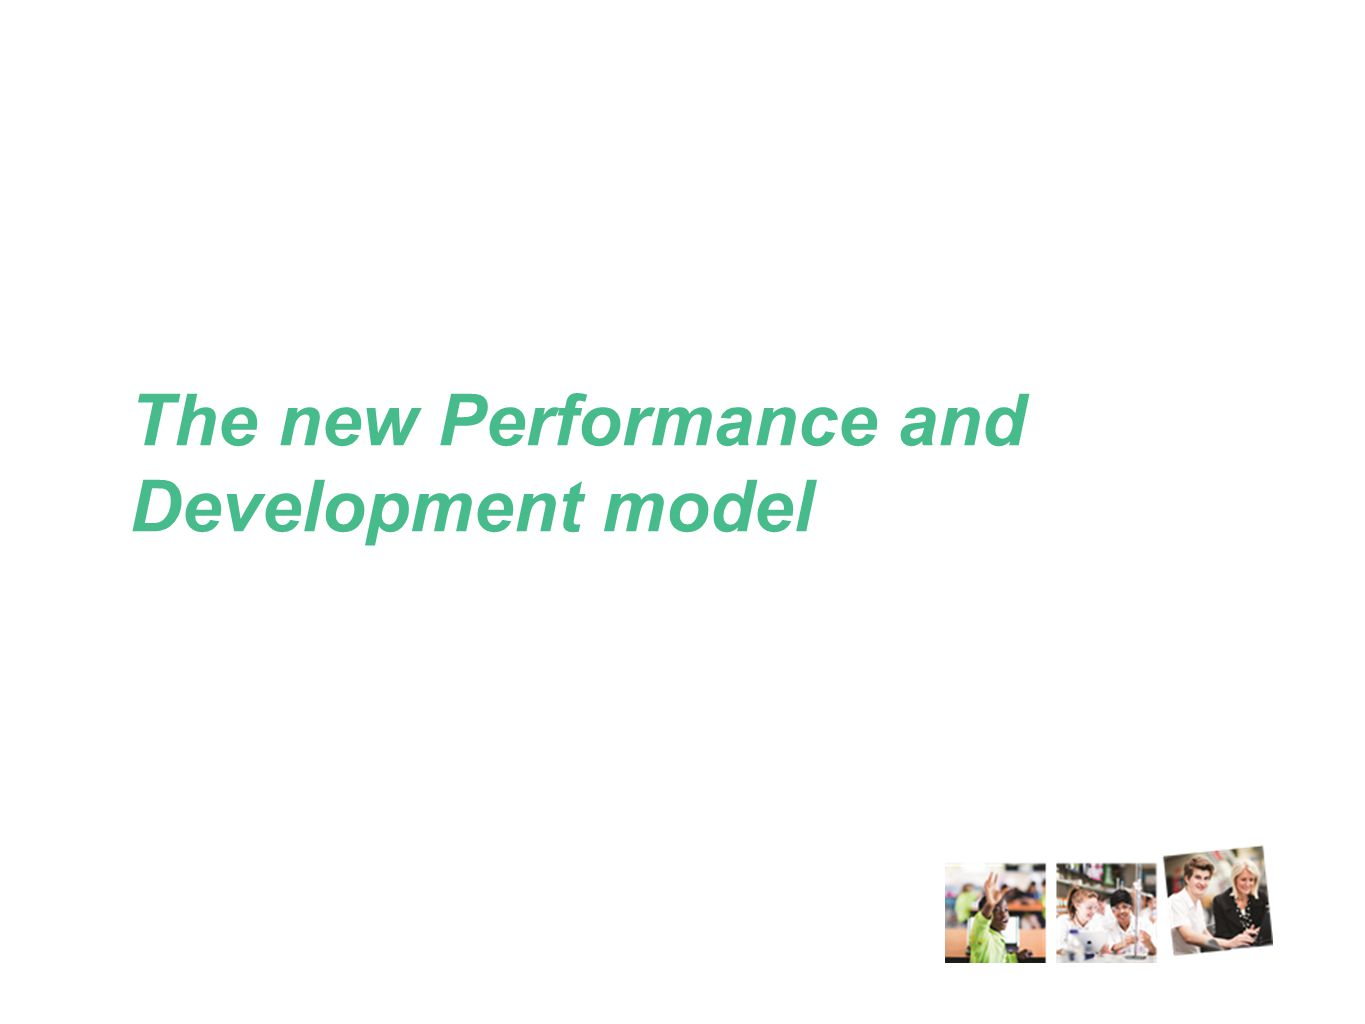 The new Performance and Development model